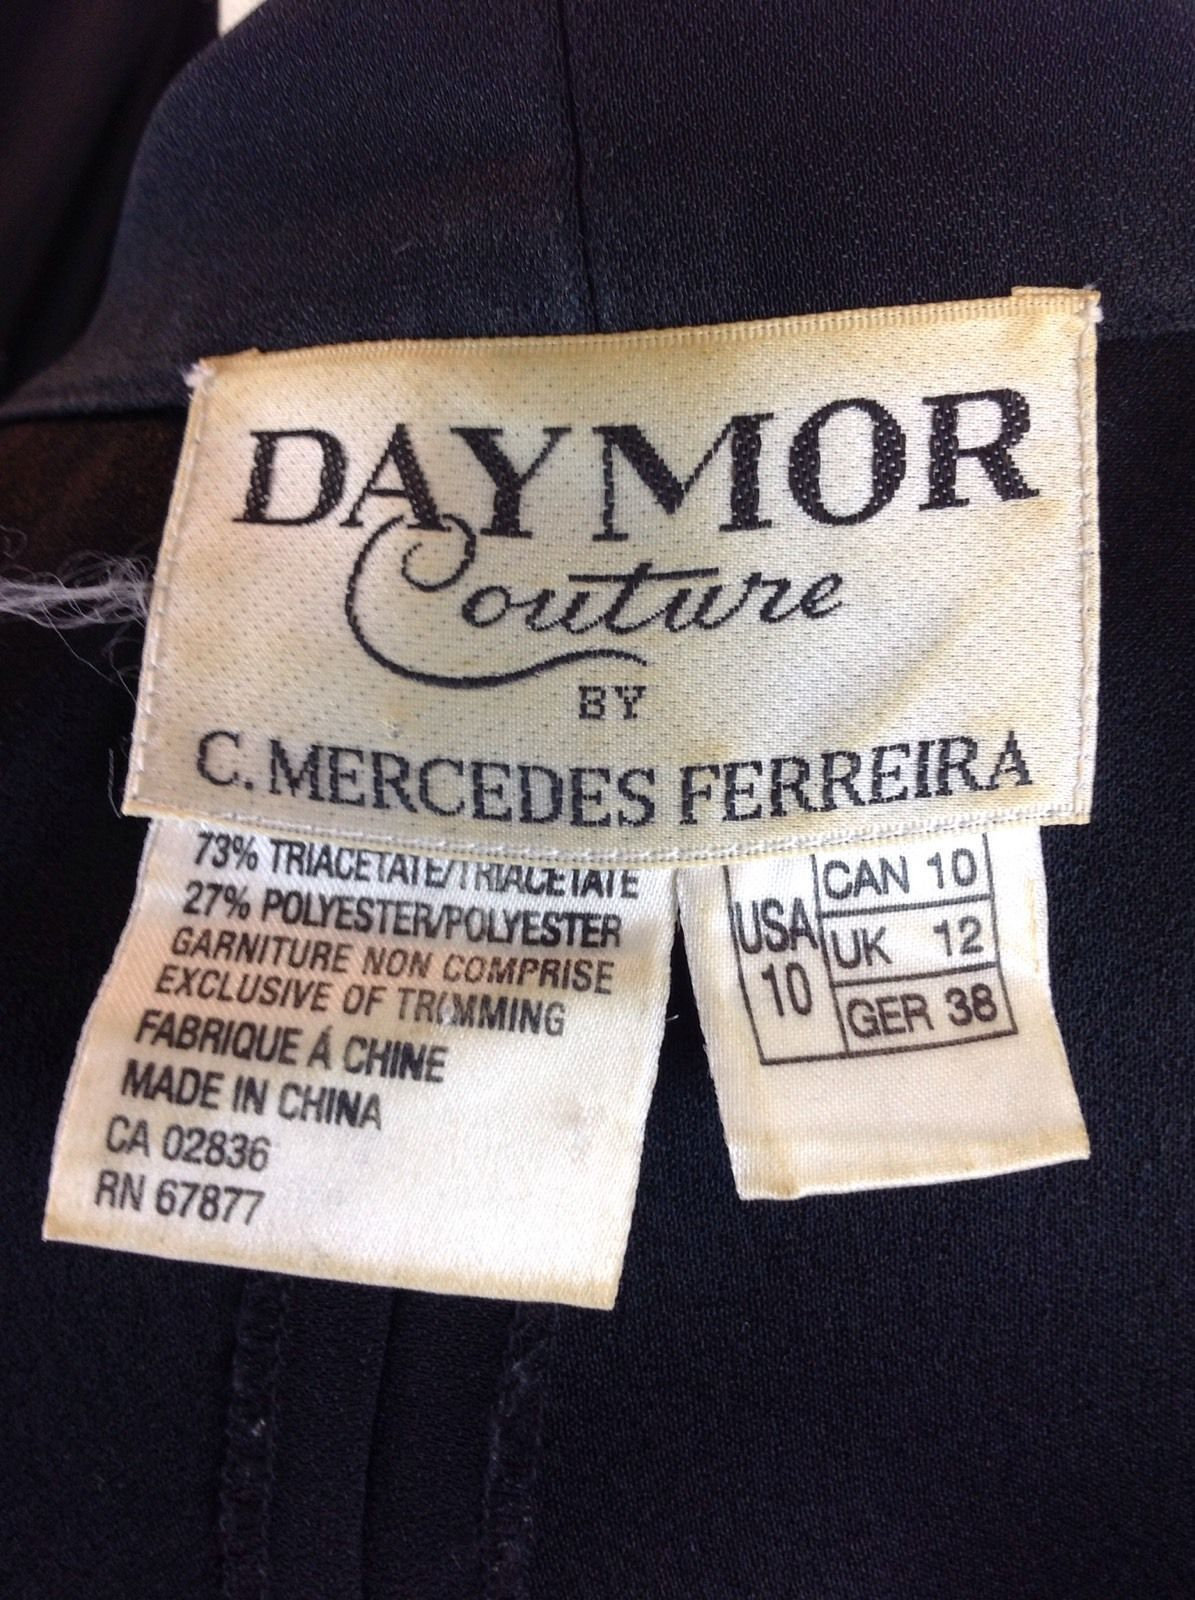 Daymor Couture C Mercedes Ferreira Retro 1940s Dress Hollywood Glam NYE Party M